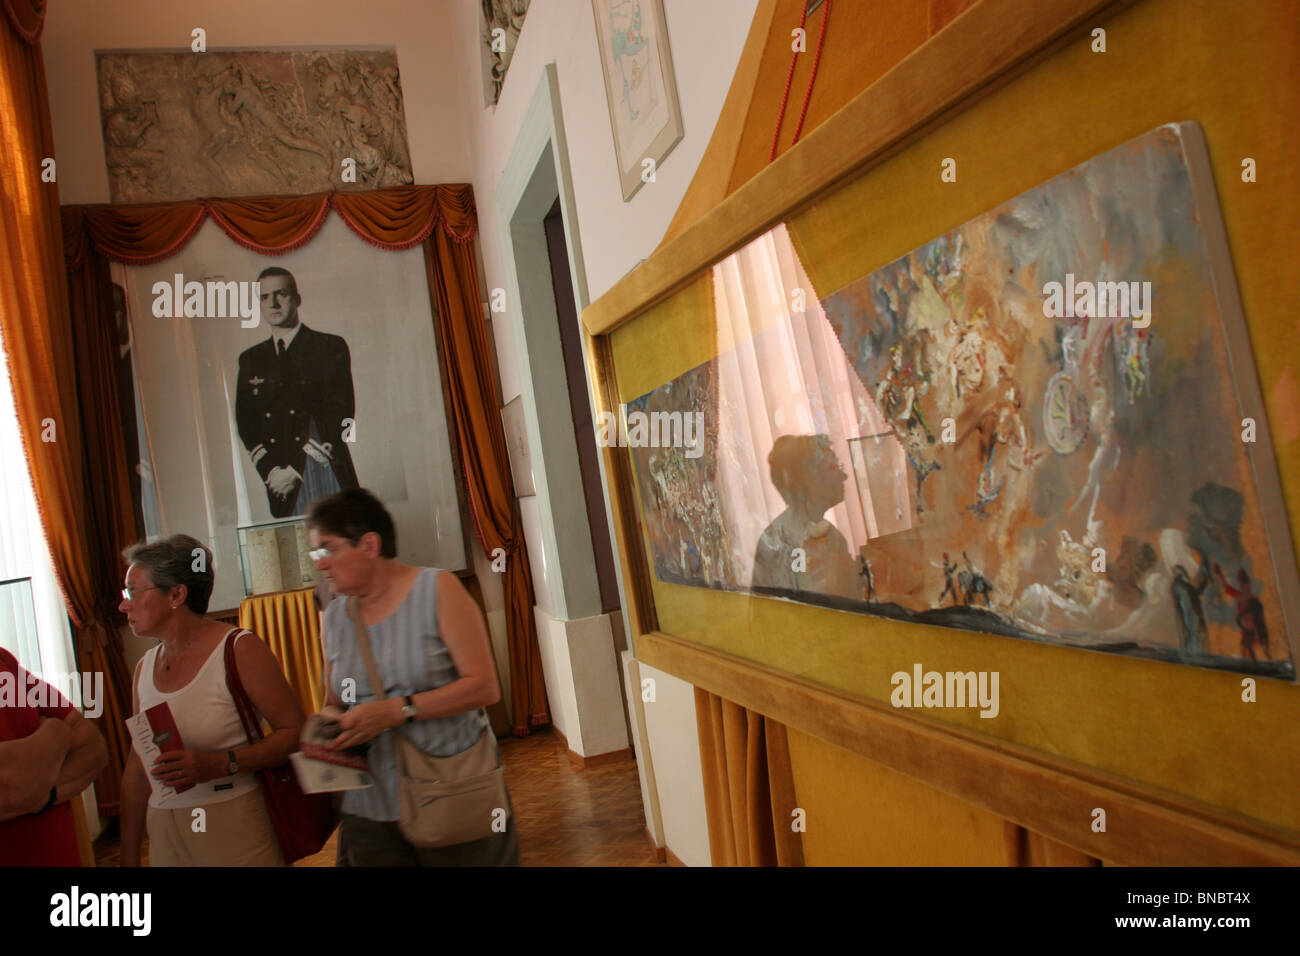 Salvador Dali Museum, Figueres, Catalonia, Spain. Sept 2006 - Stock Image